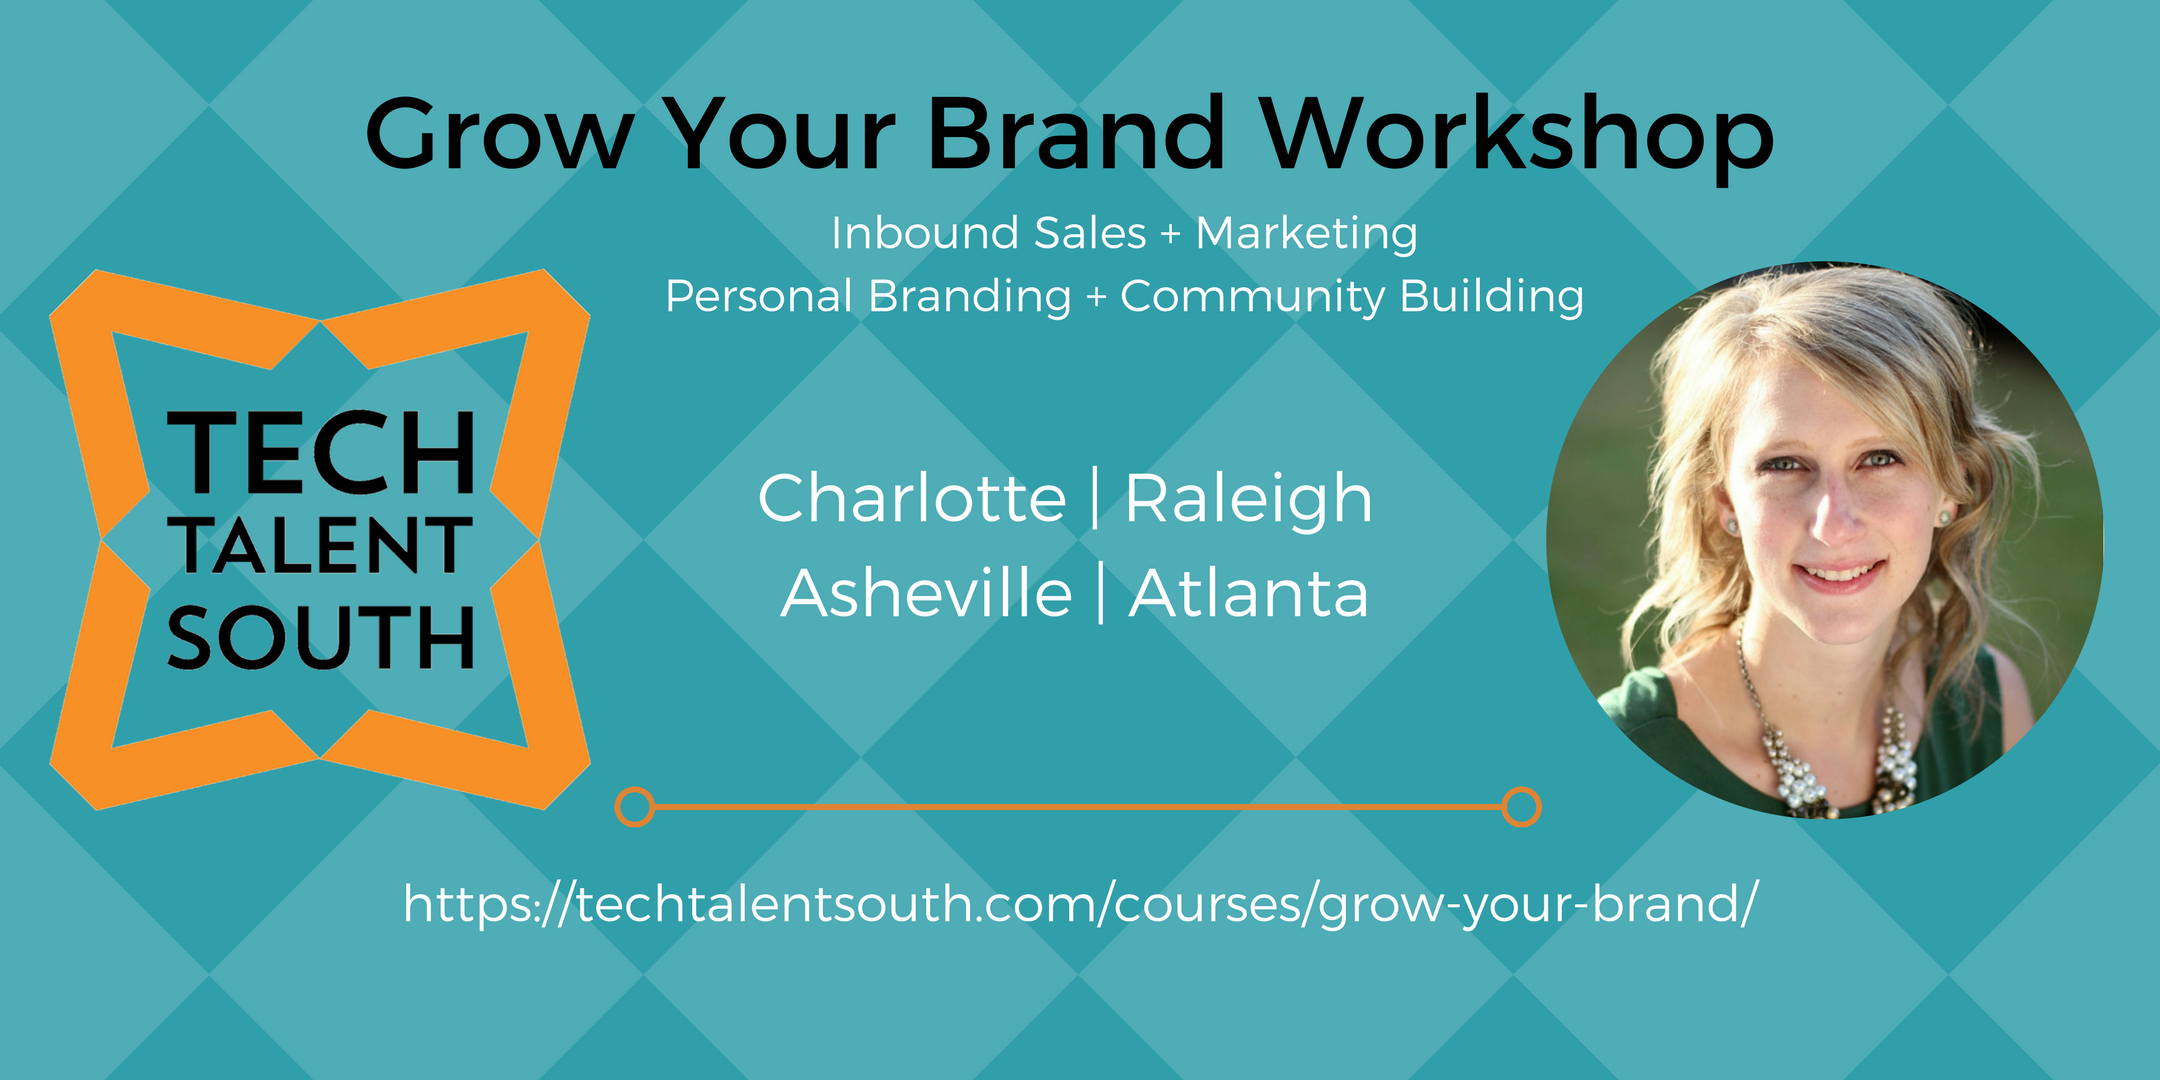 Grow Your Brand Using Digital Marketing Workshop Hitting the Southeast in 2017